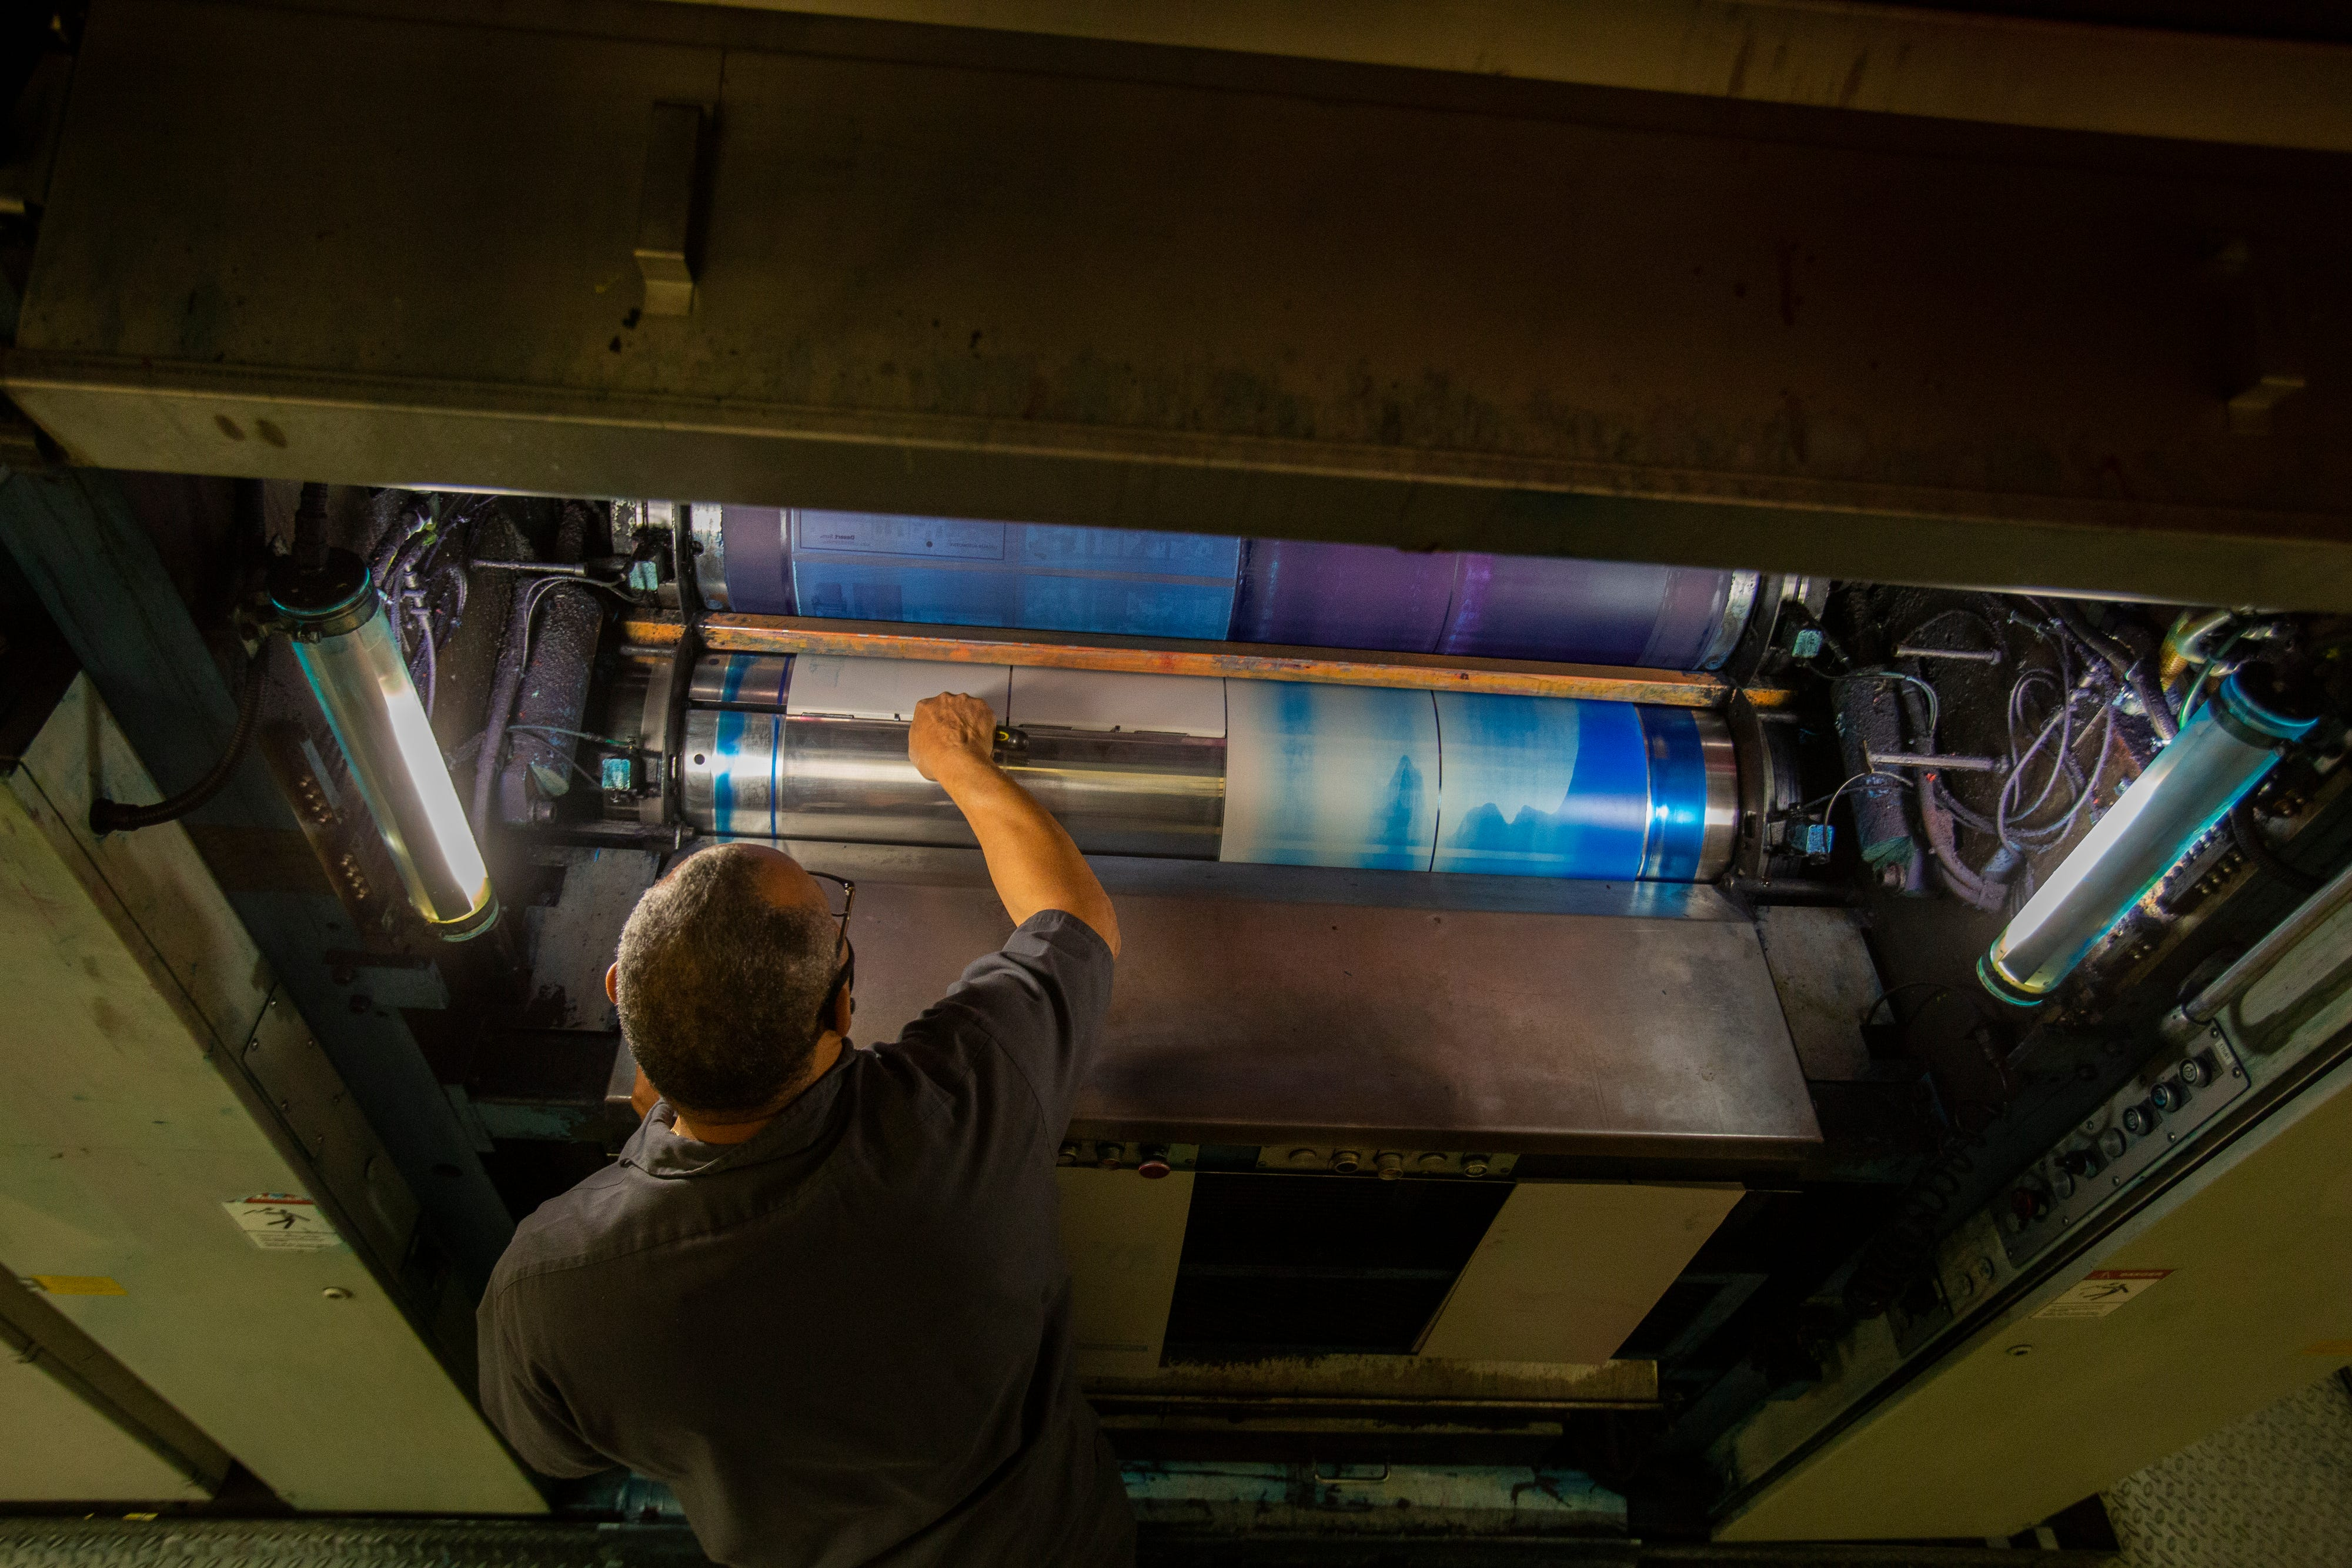 Wendell Saxton, senior press operator, sets plates on the presses. Saxton has been working to put together The Desert Sun newspaper for 35 years.